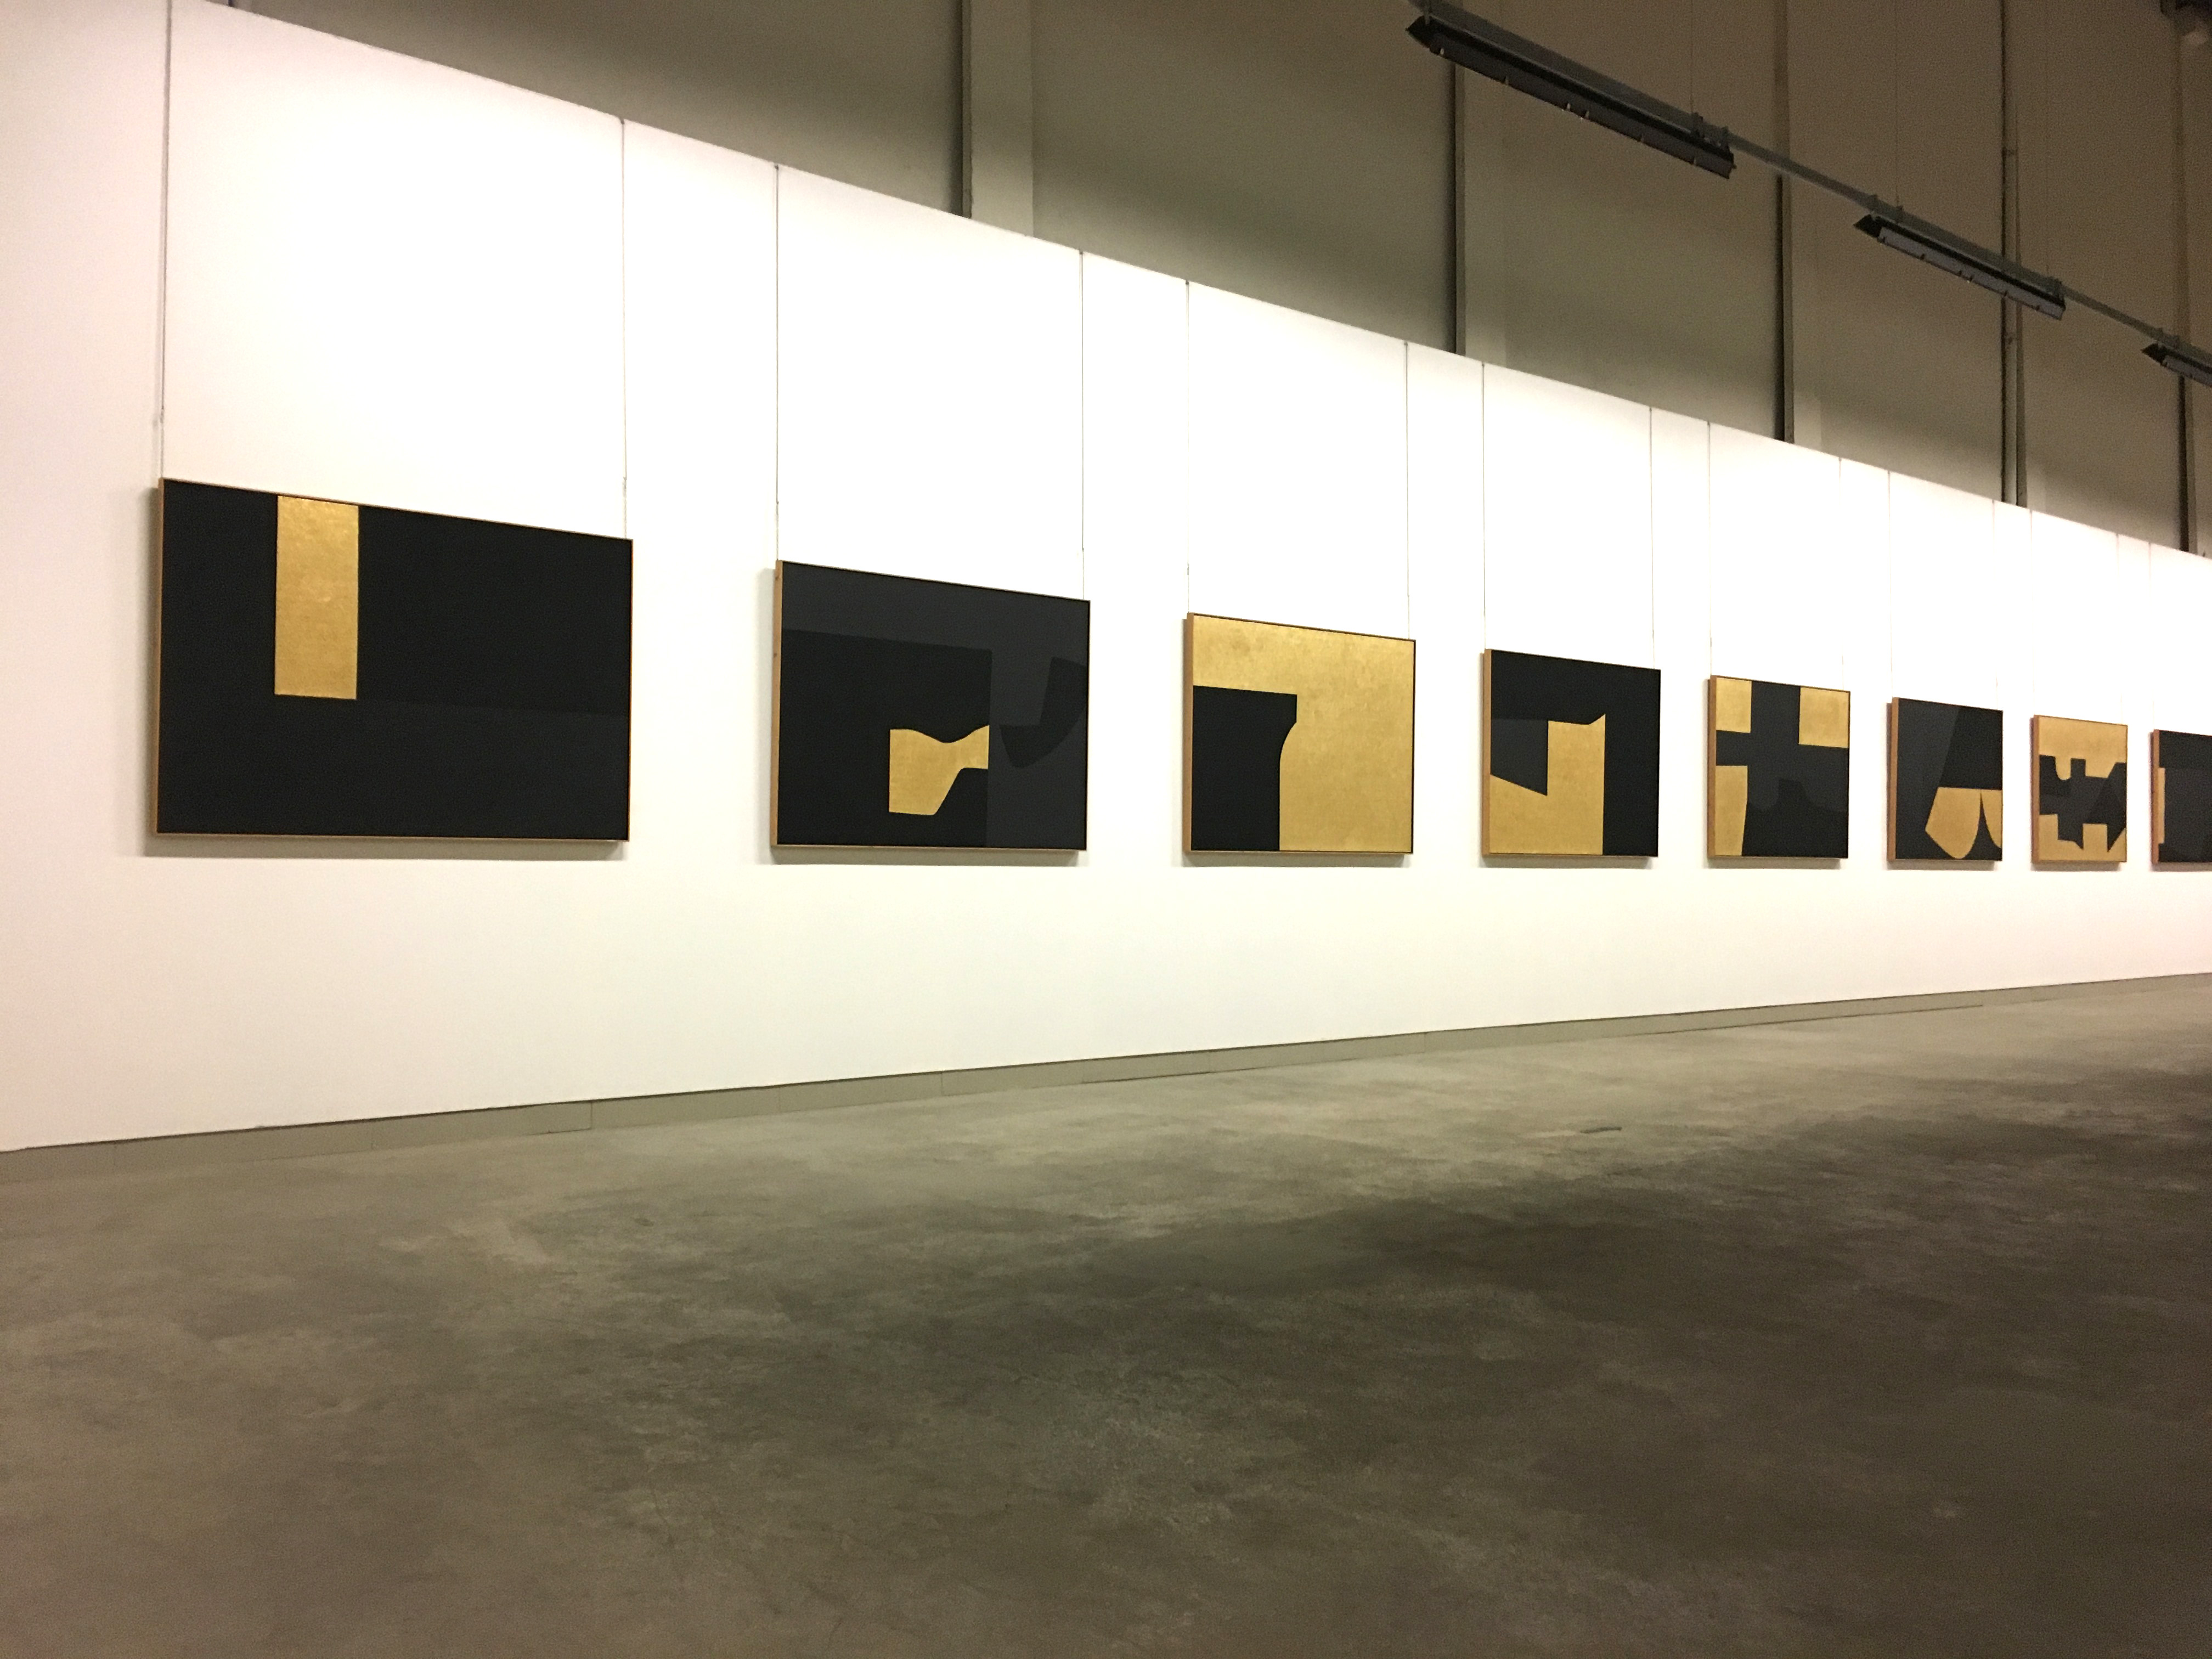 Gold and black artworks Alberto Burri